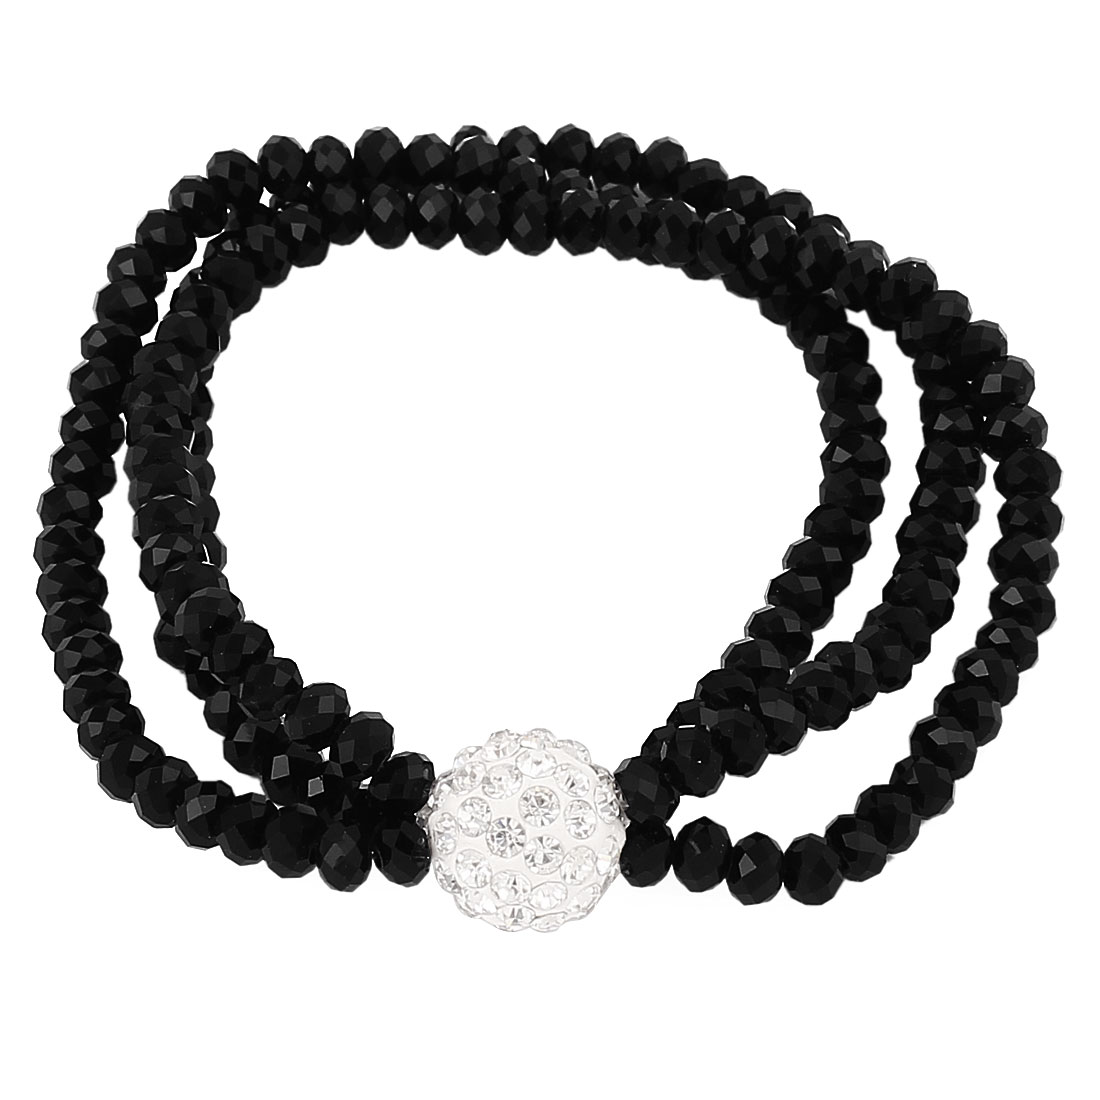 Lady Jewelry 12mm Faux Crystal Ball Beaded Stretch Bangle Bracelet Black